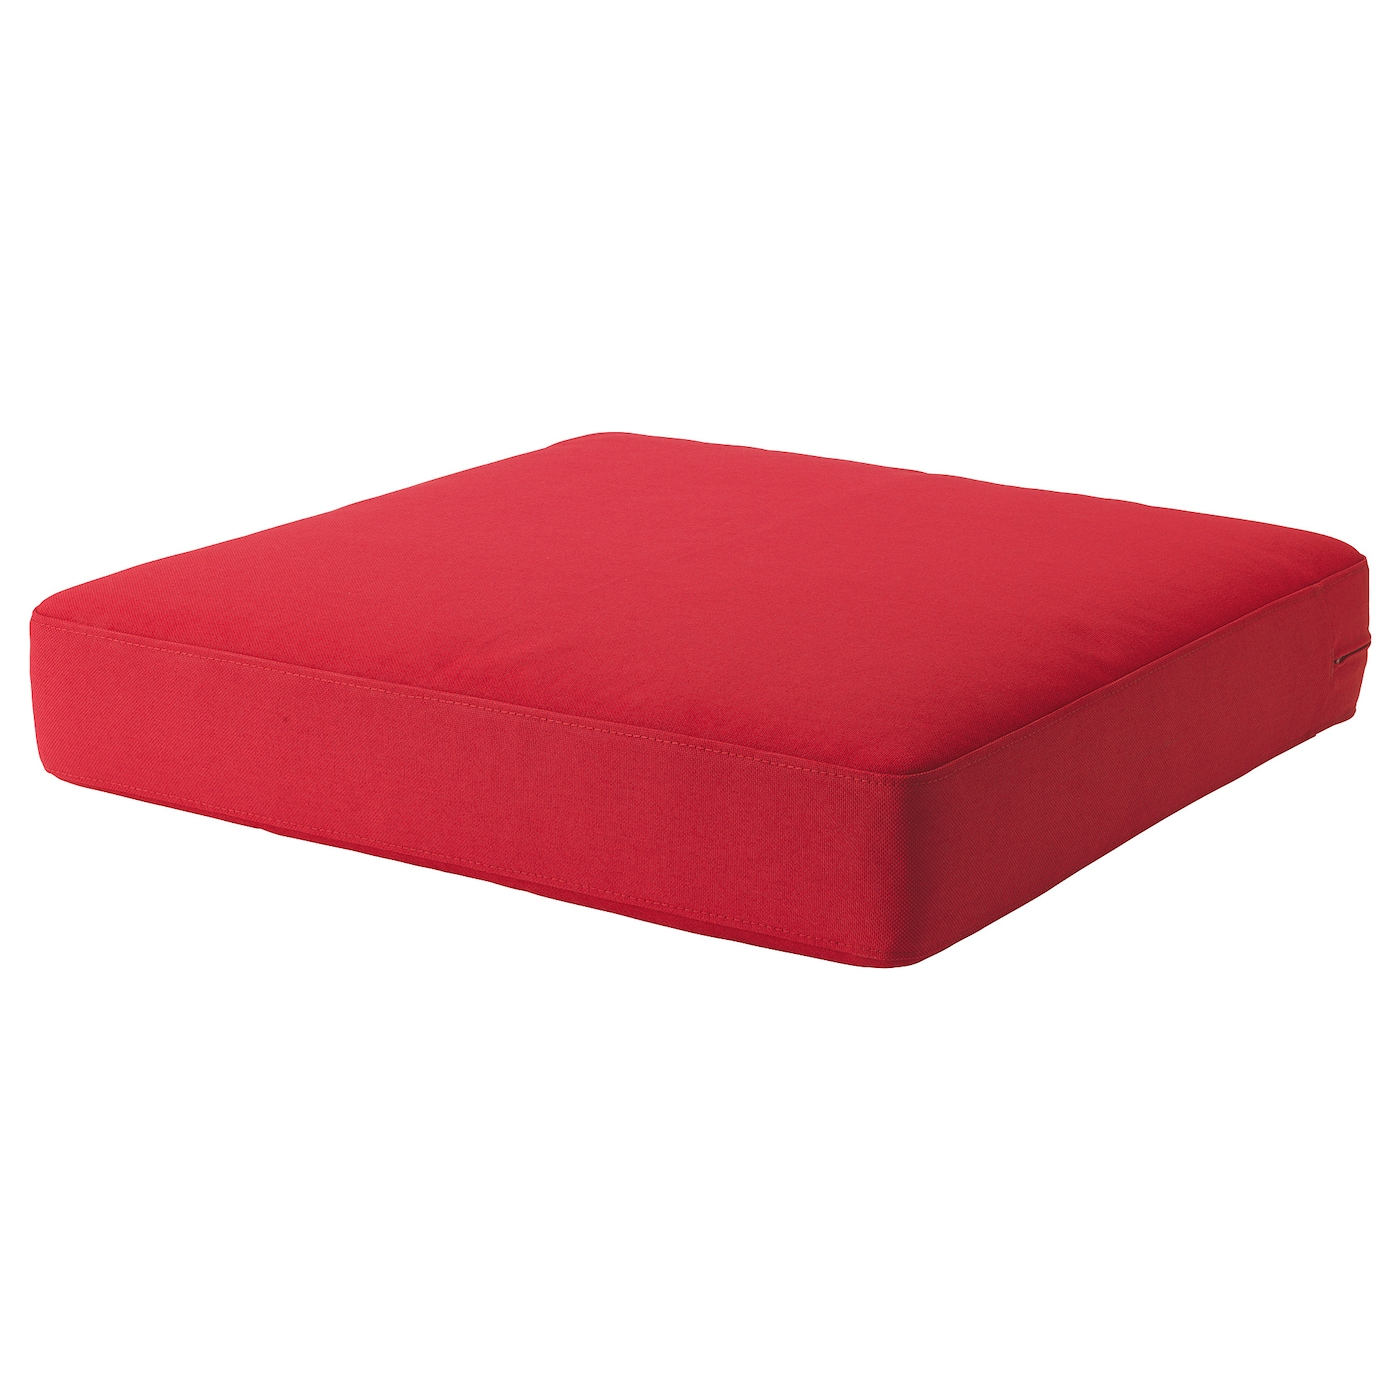 fr s n duvholmen coussin d 39 assise ext rieur rouge 62 x 62 cm ikea. Black Bedroom Furniture Sets. Home Design Ideas